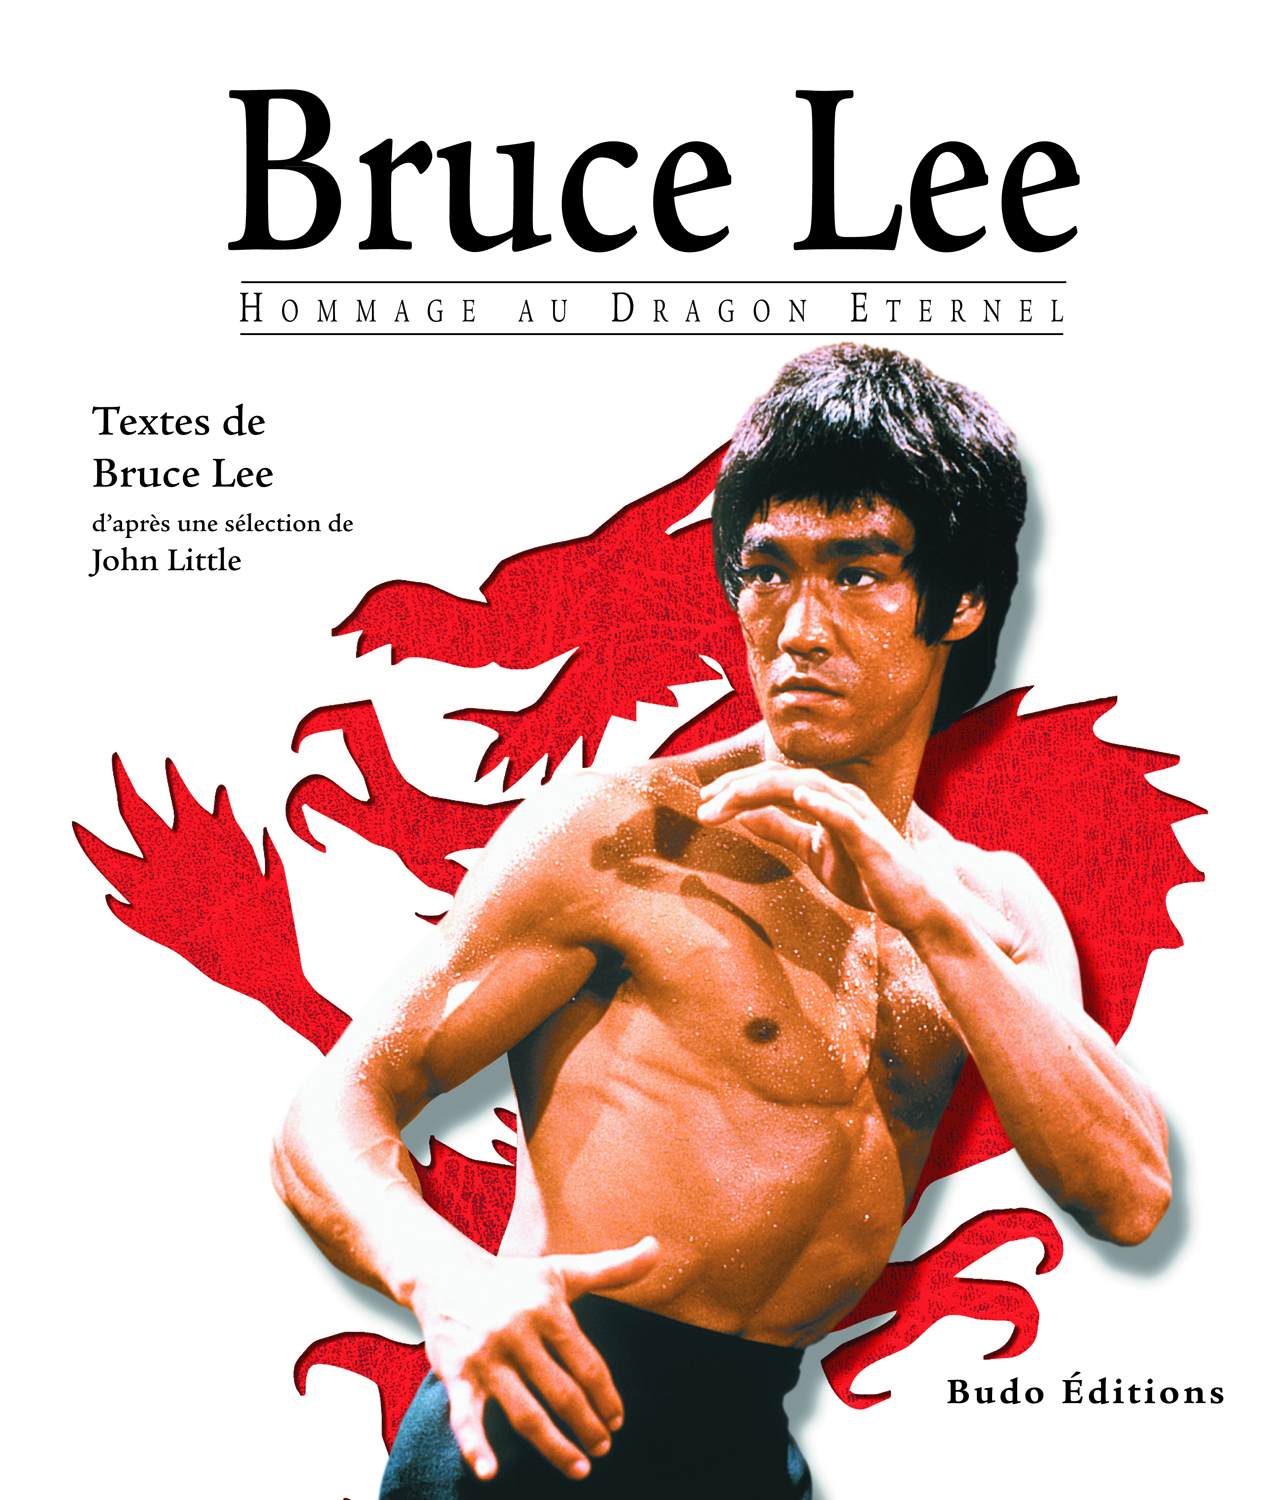 BRUCE LEE, HOMMAGE AU DRAGON ETERNEL